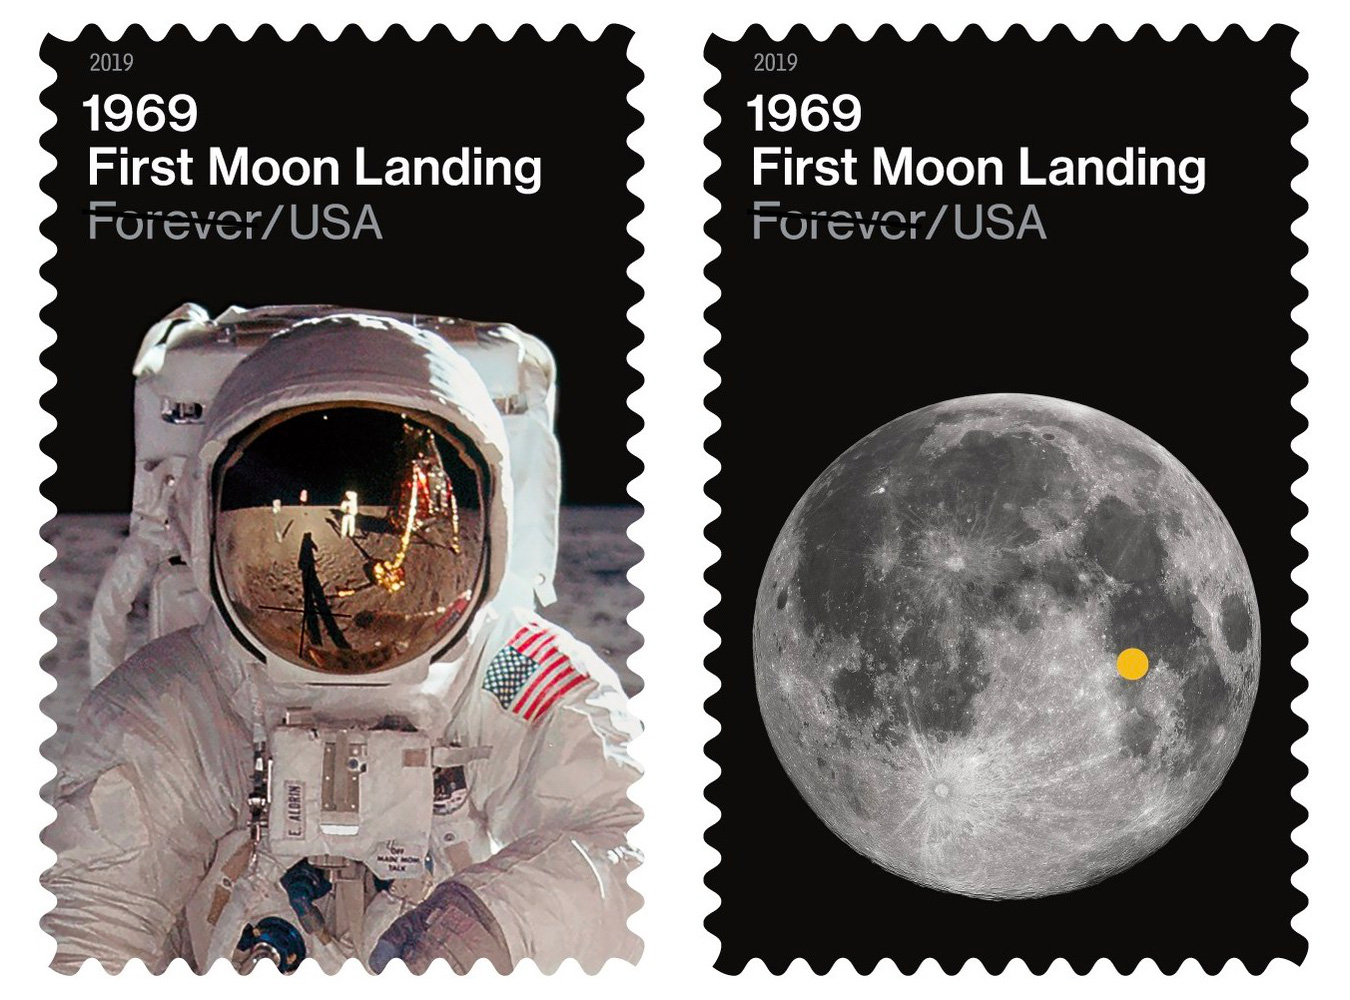 USPS Celebrates 50th Anniversary of Lunar Landing with 2 New Stamps at werd.com